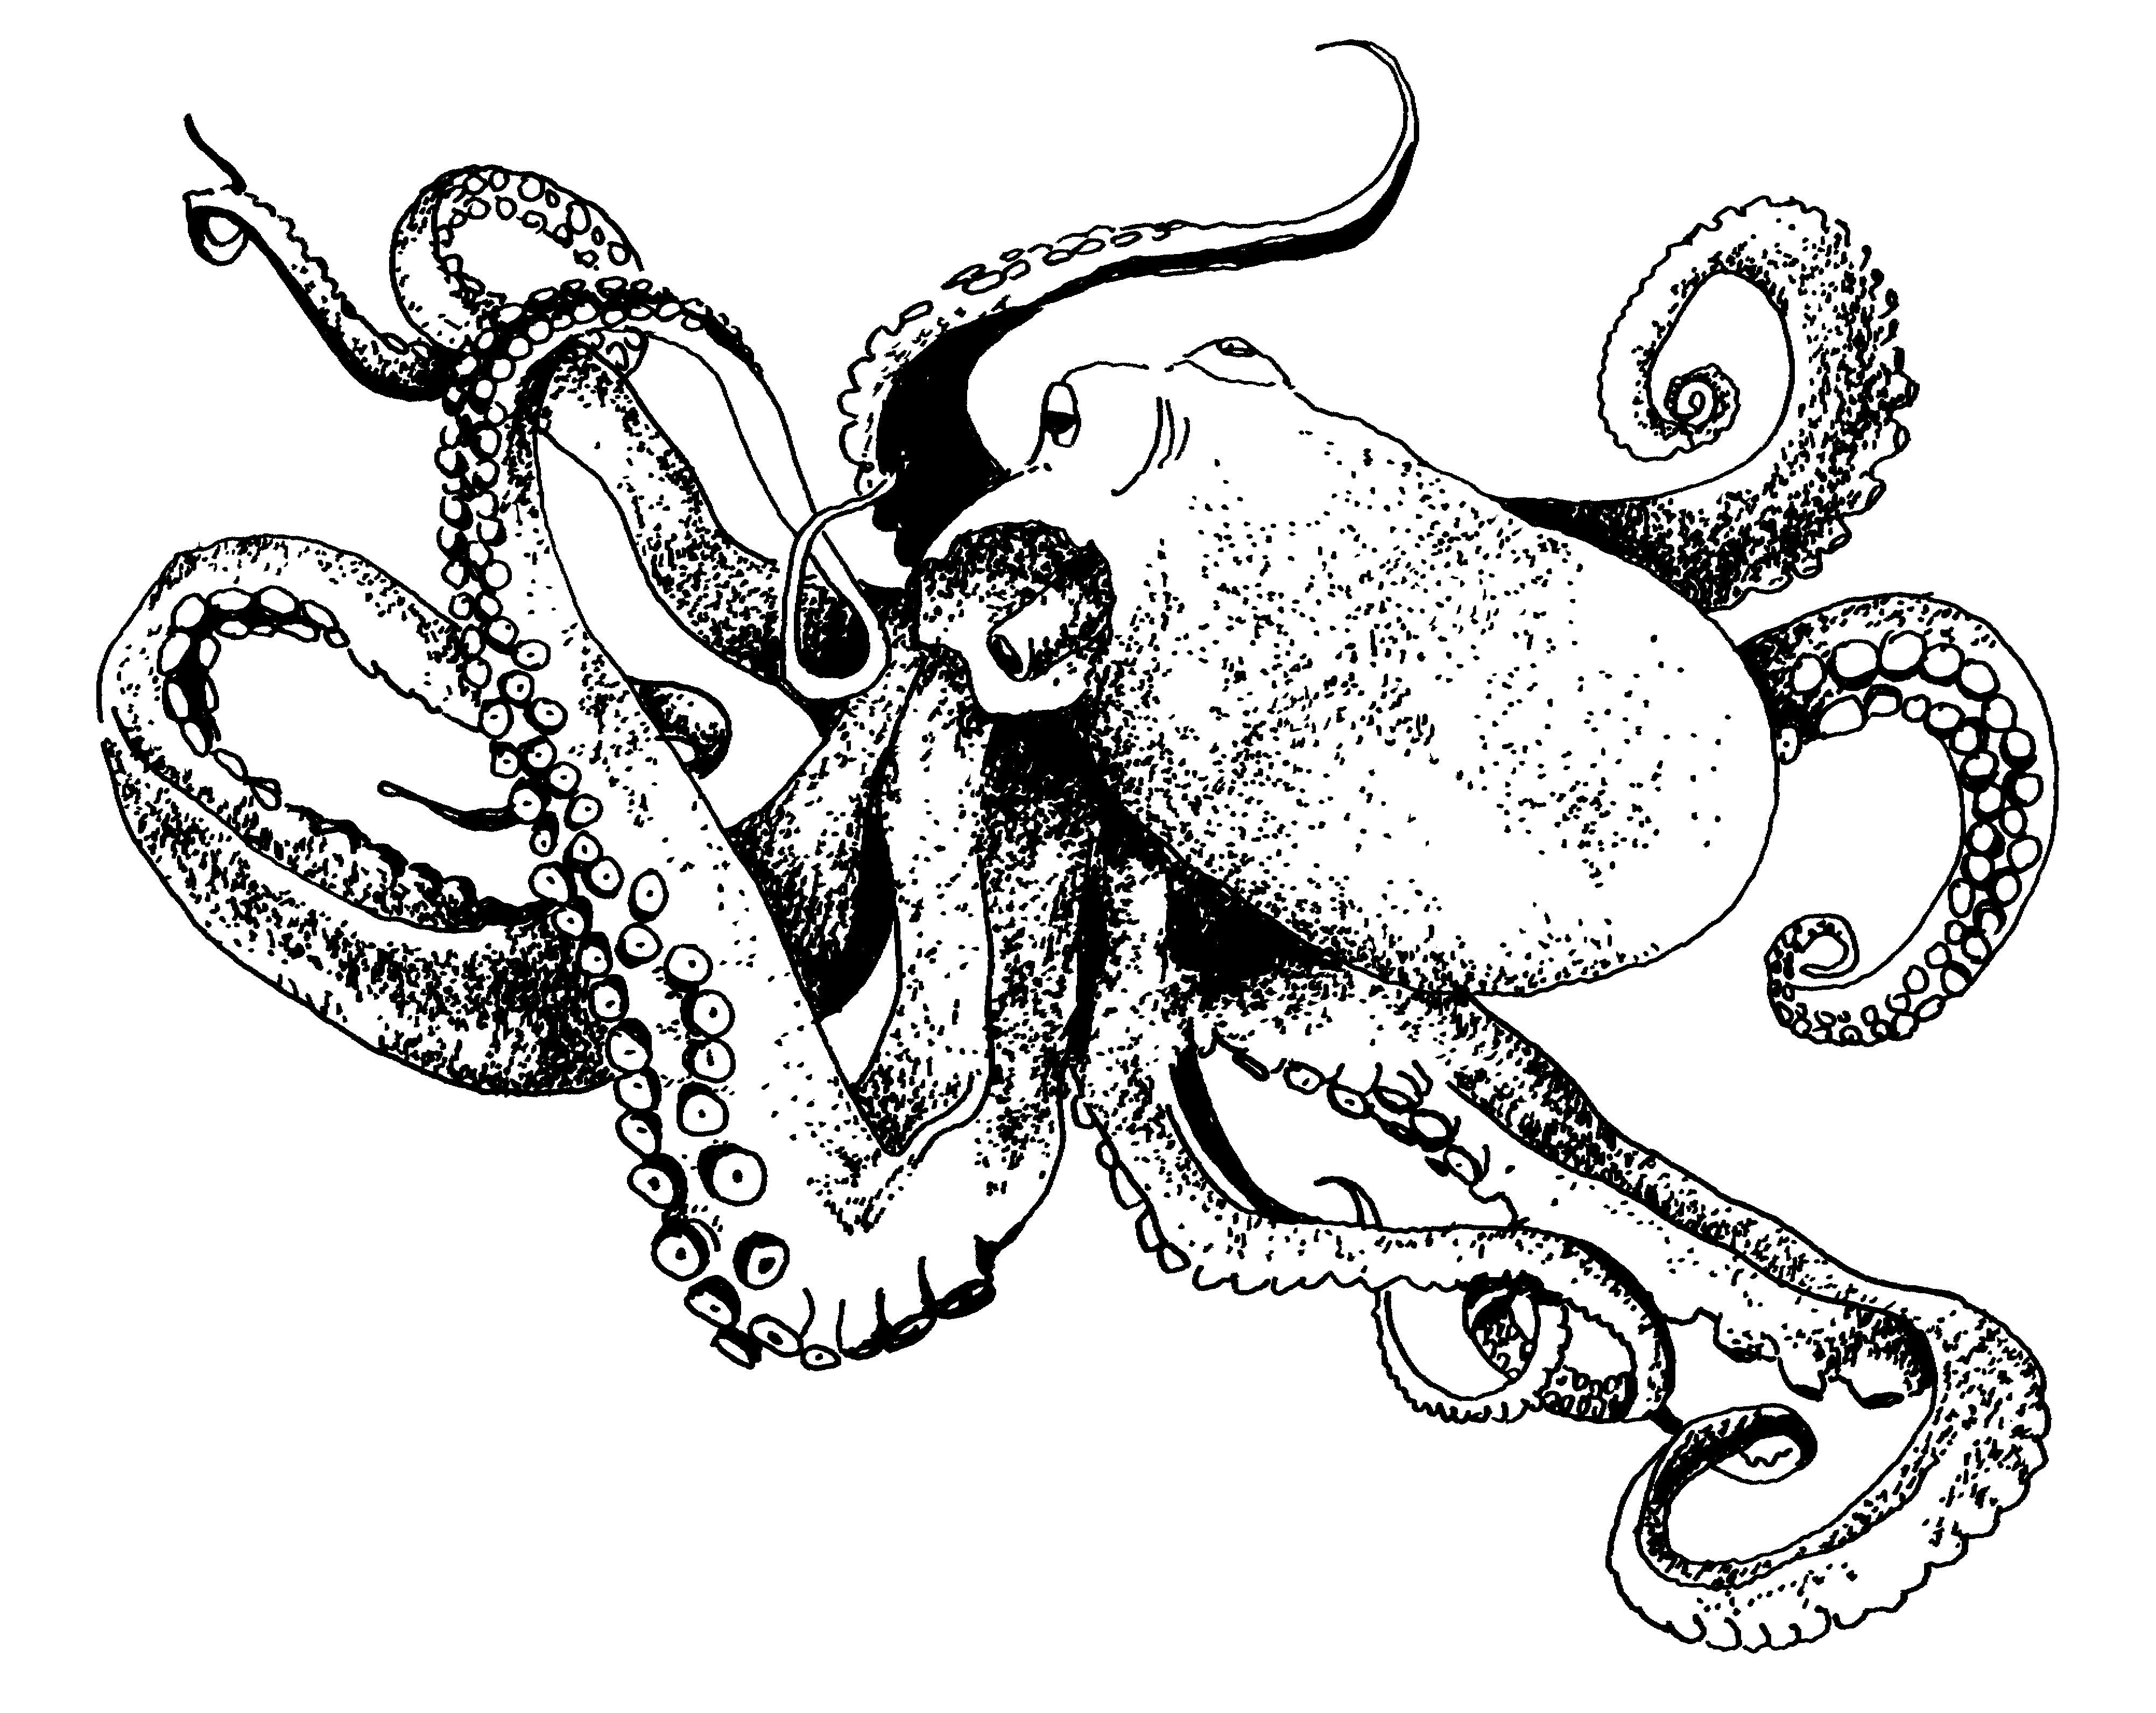 octupus drawing octopus drawing by lael johnson octupus drawing